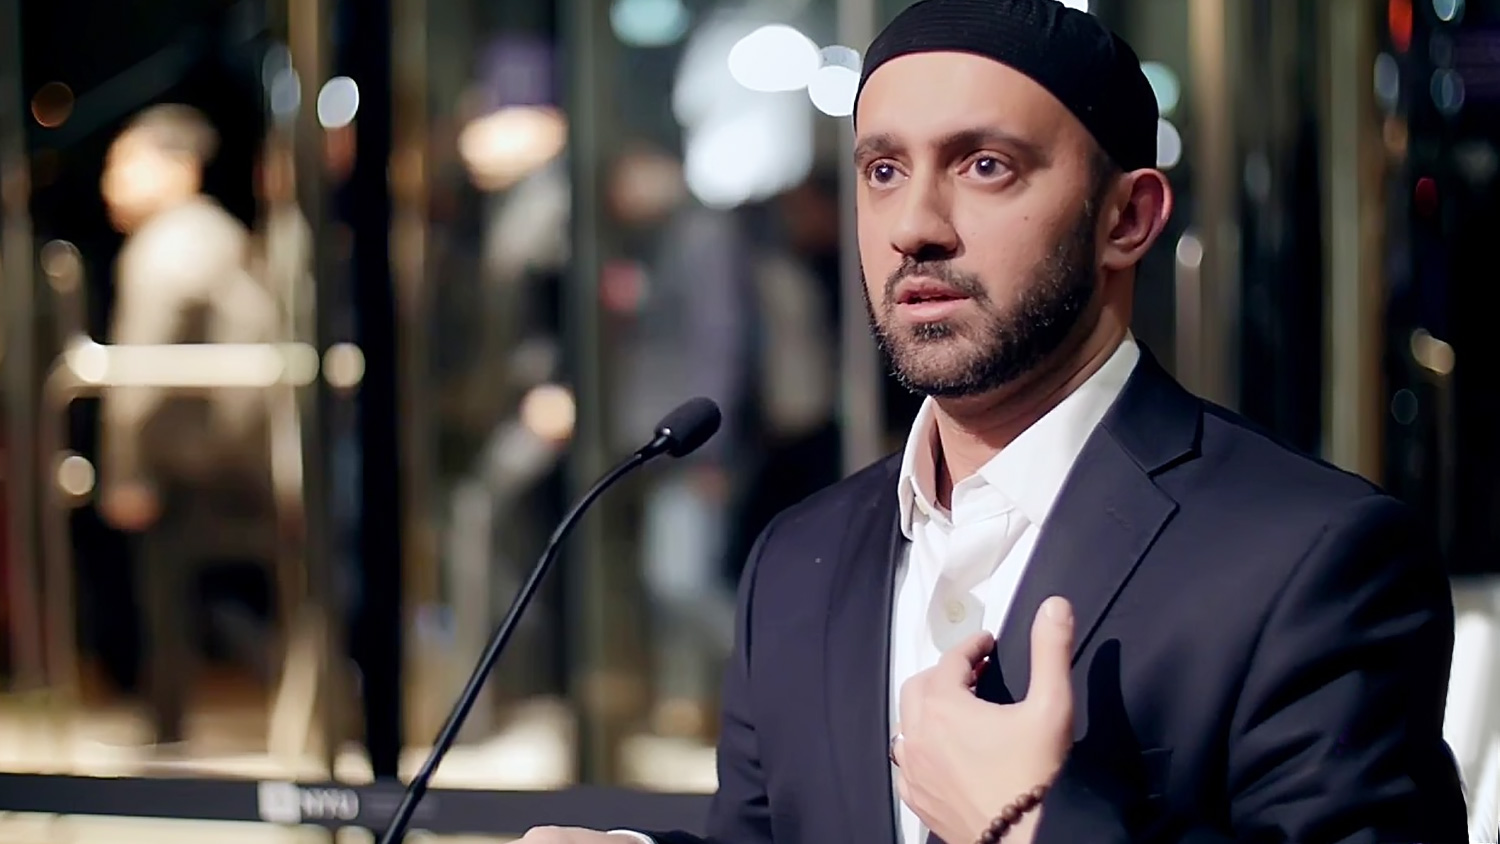 Imam Khalid Latif - Executive Director of the NYU Islamic Center